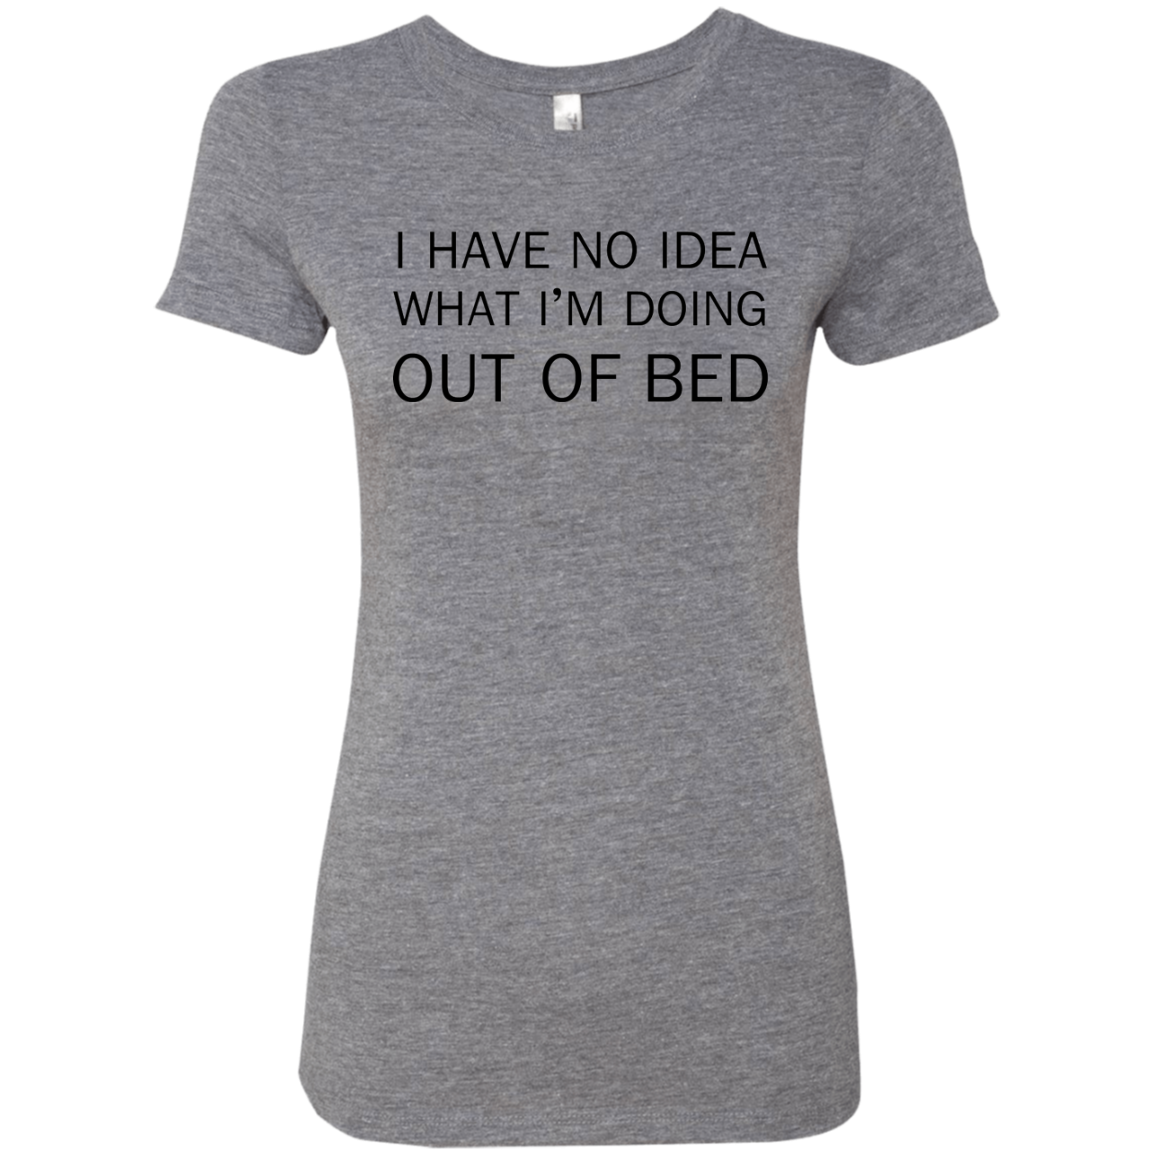 I Have No Idea What I'm Doing Out of Bed Women's Classic Tee - Trendy Tees